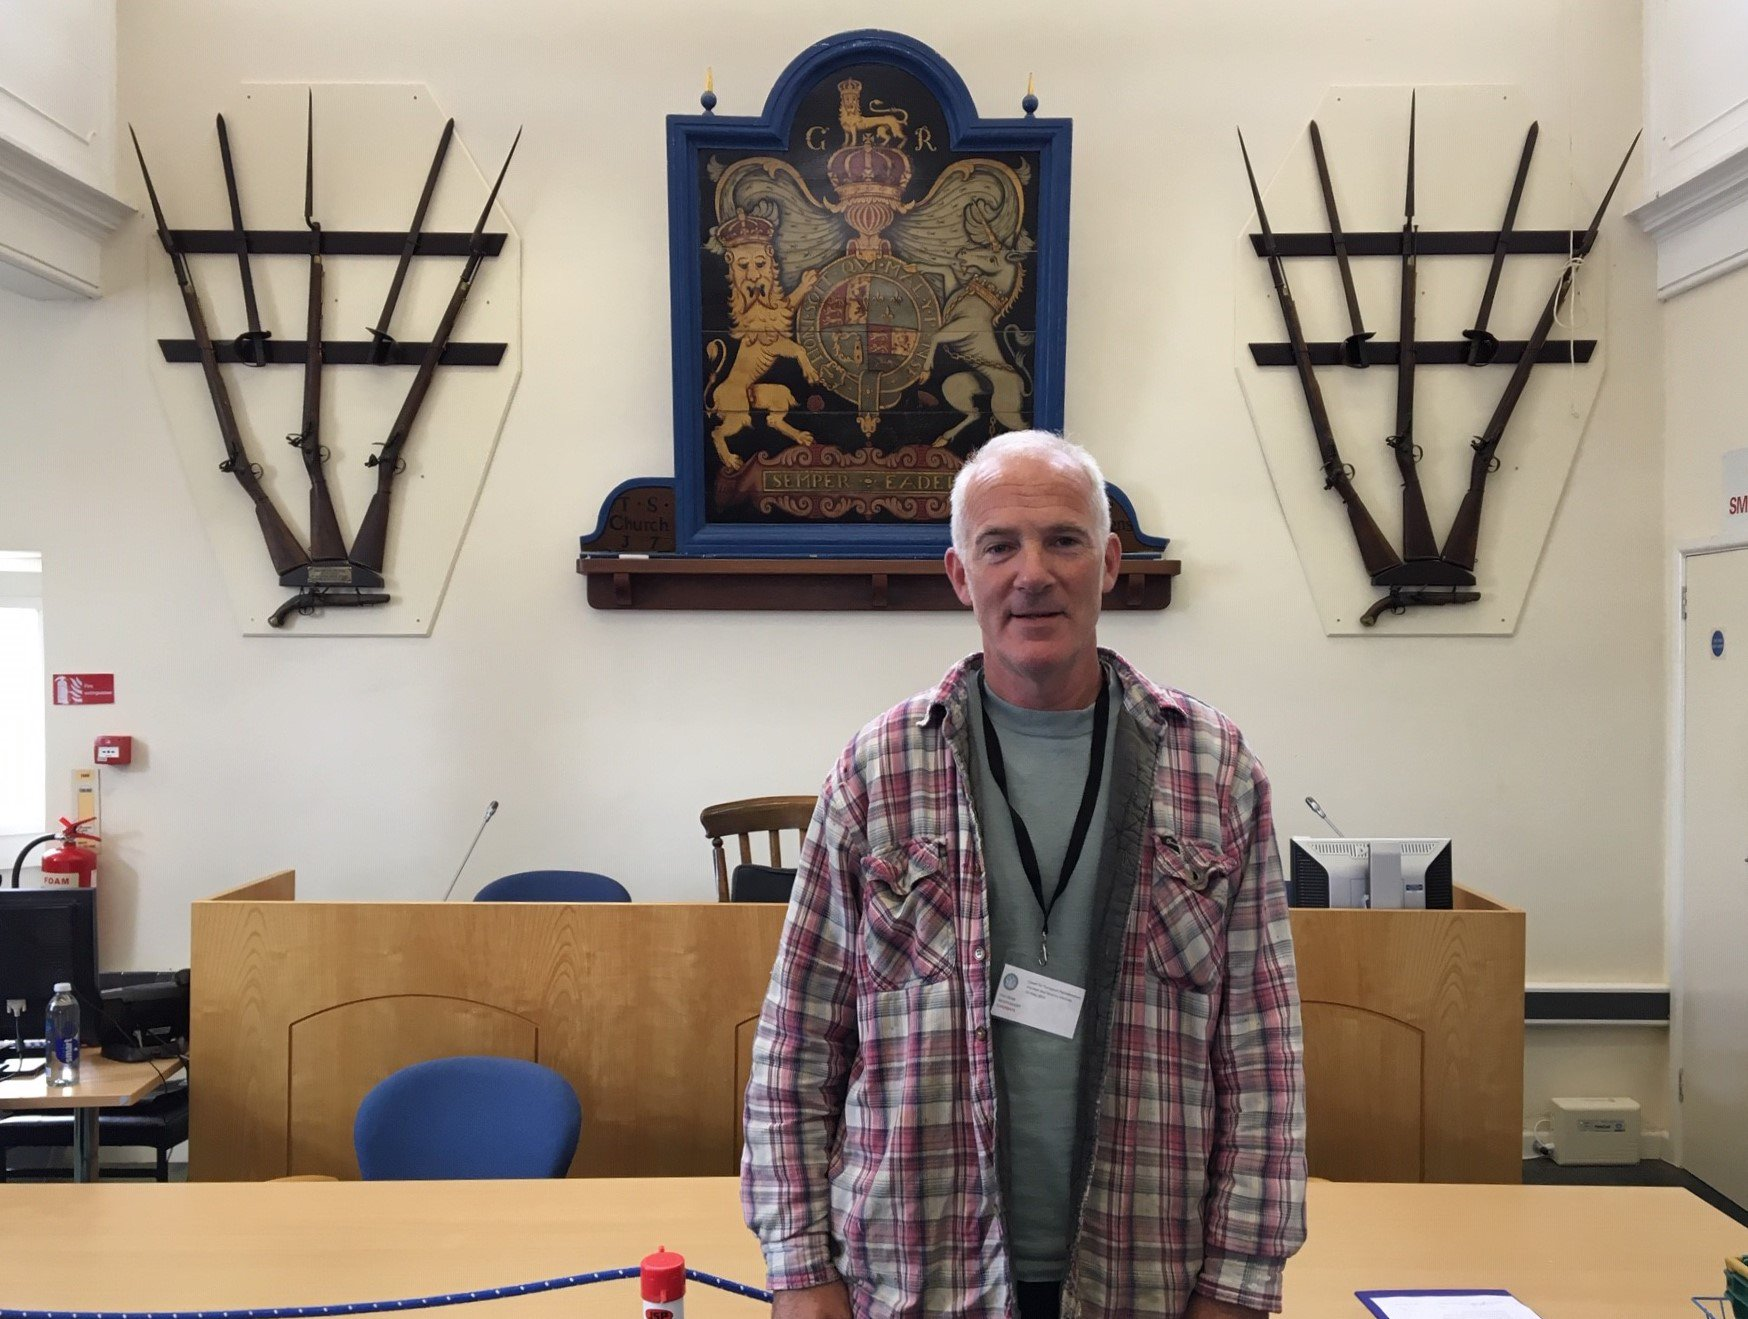 Tim Dean told Radio Scilly that he will do his best to justify the faith shown in him by the island's population. Image courtesy of the Council of the Isles of Scilly.